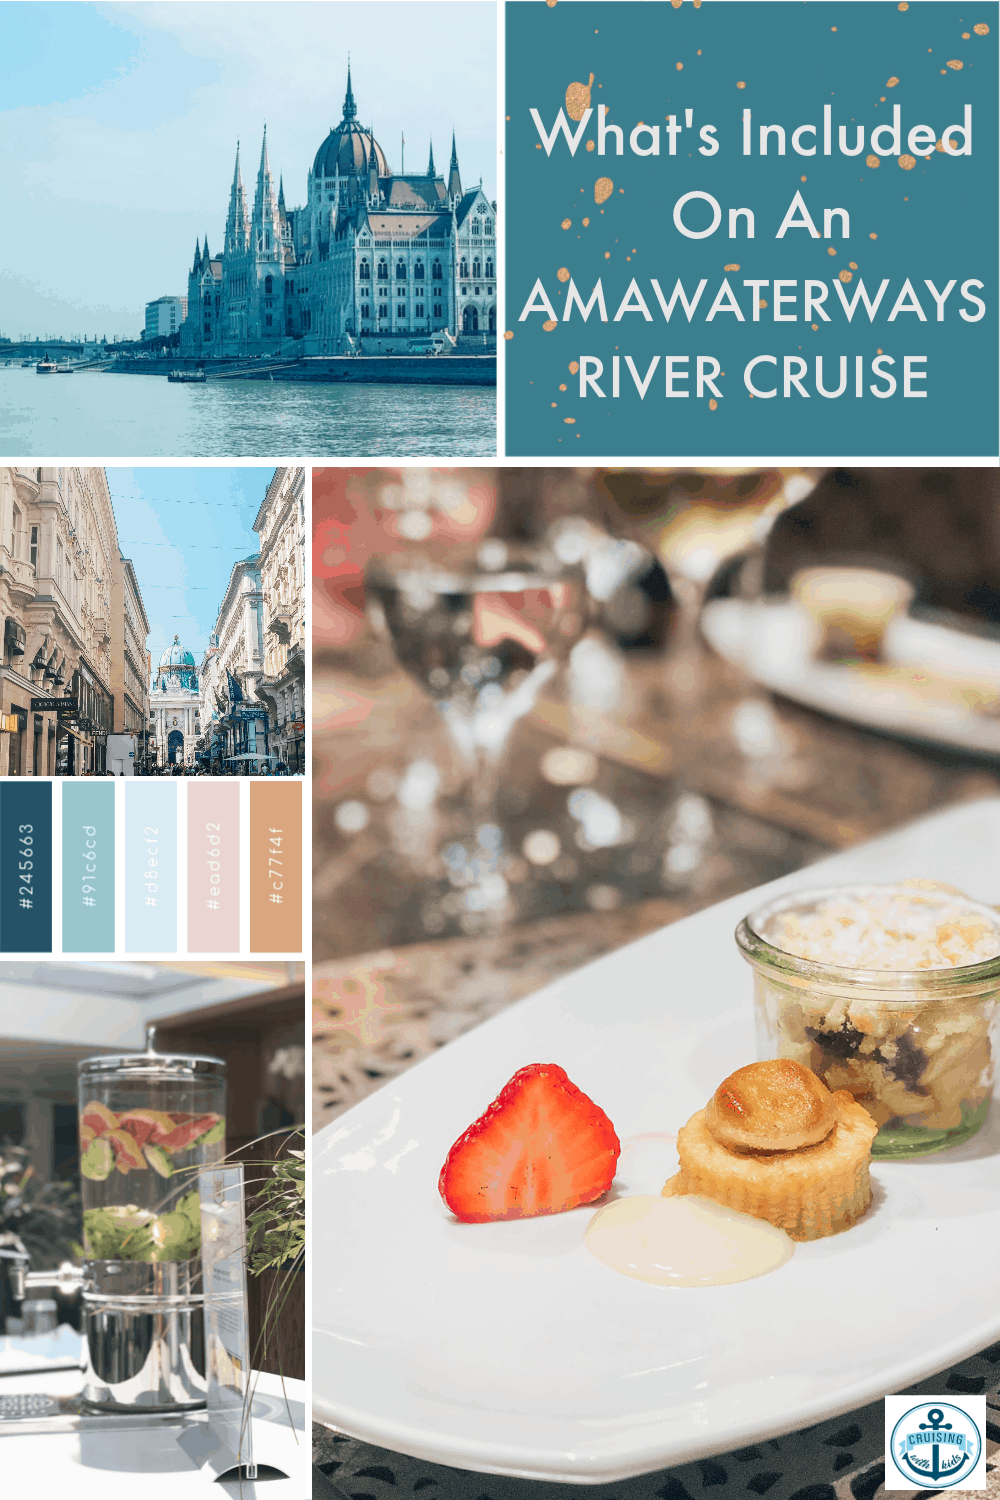 Whats included on an AmaWaterways River Cruise, including meals, drinks, trips and gym, exactly what is included in the price.